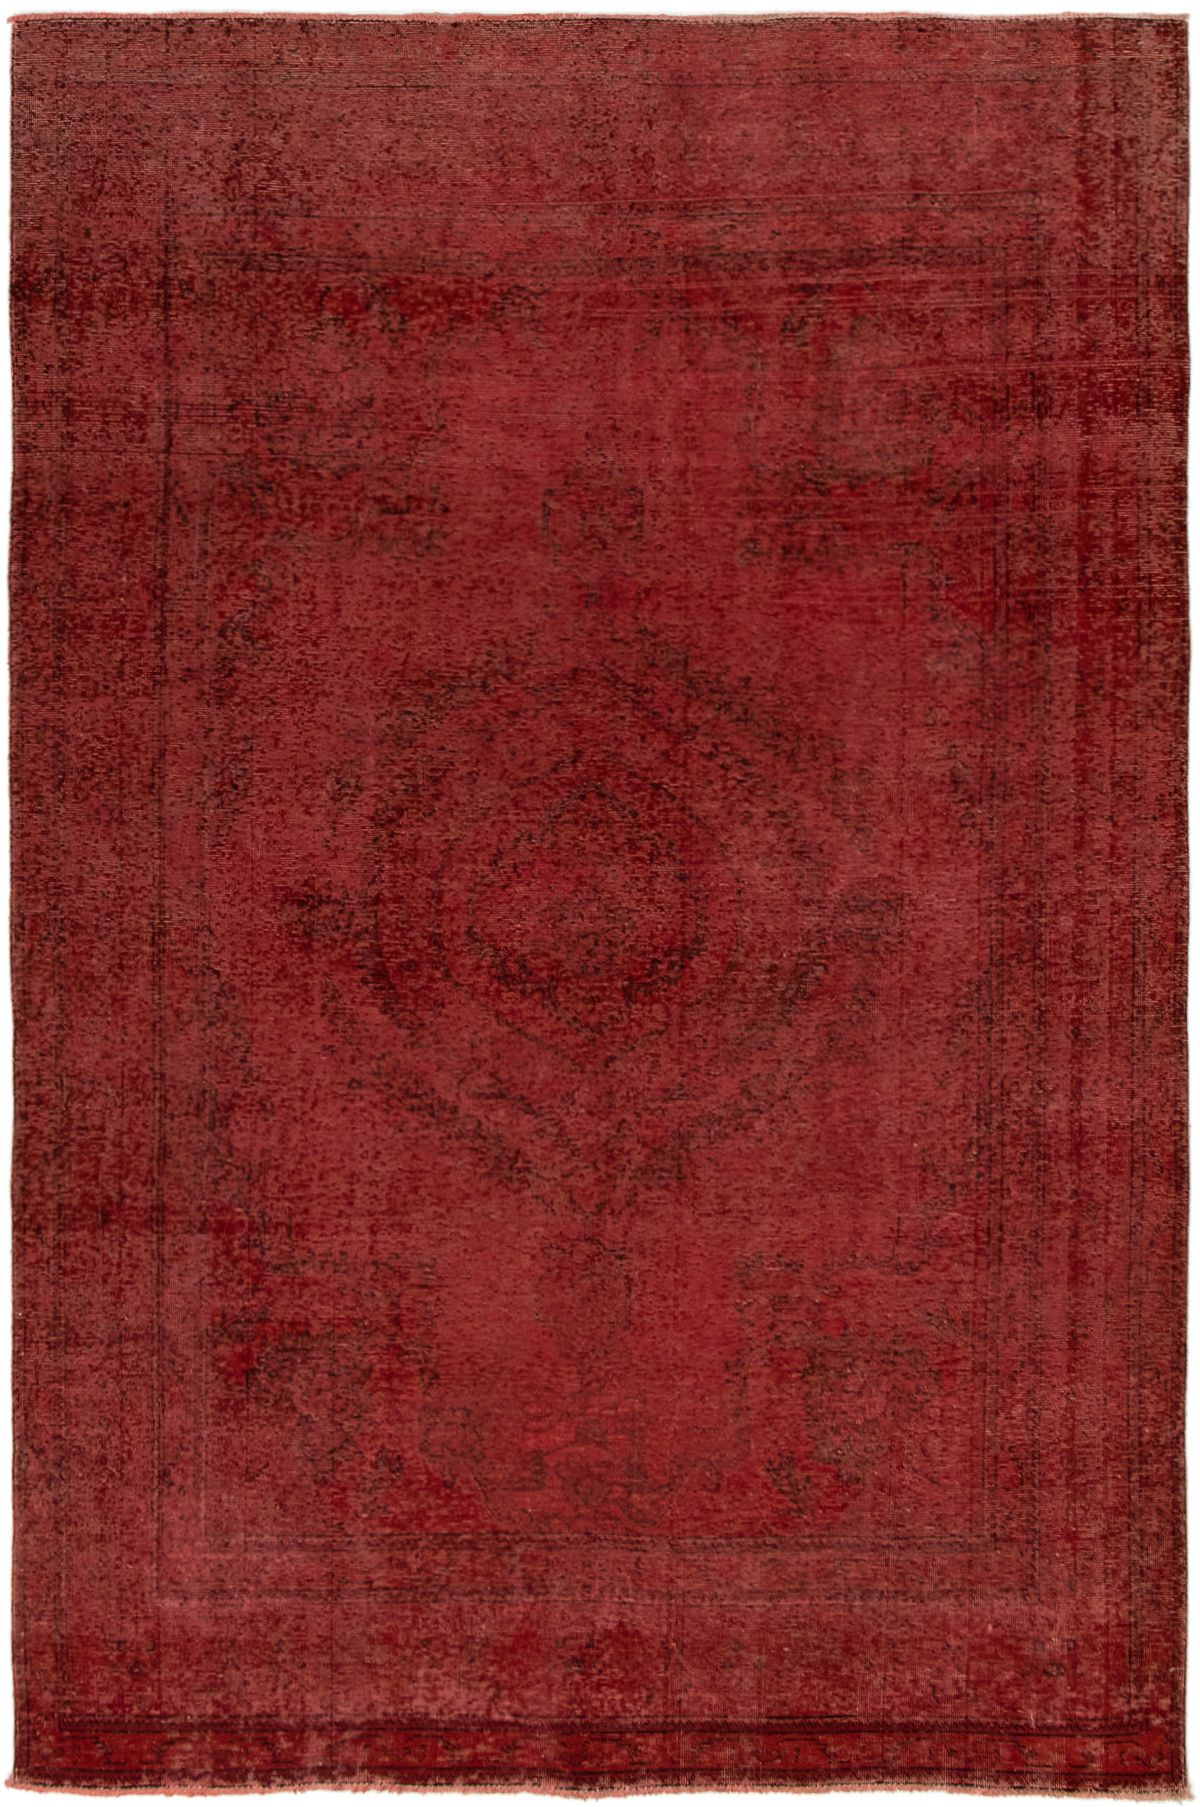 """Hand-knotted Color Transition Dark Red Wool Rug 6'9"""" x 10'0"""" Size: 6'9"""" x 10'0"""""""